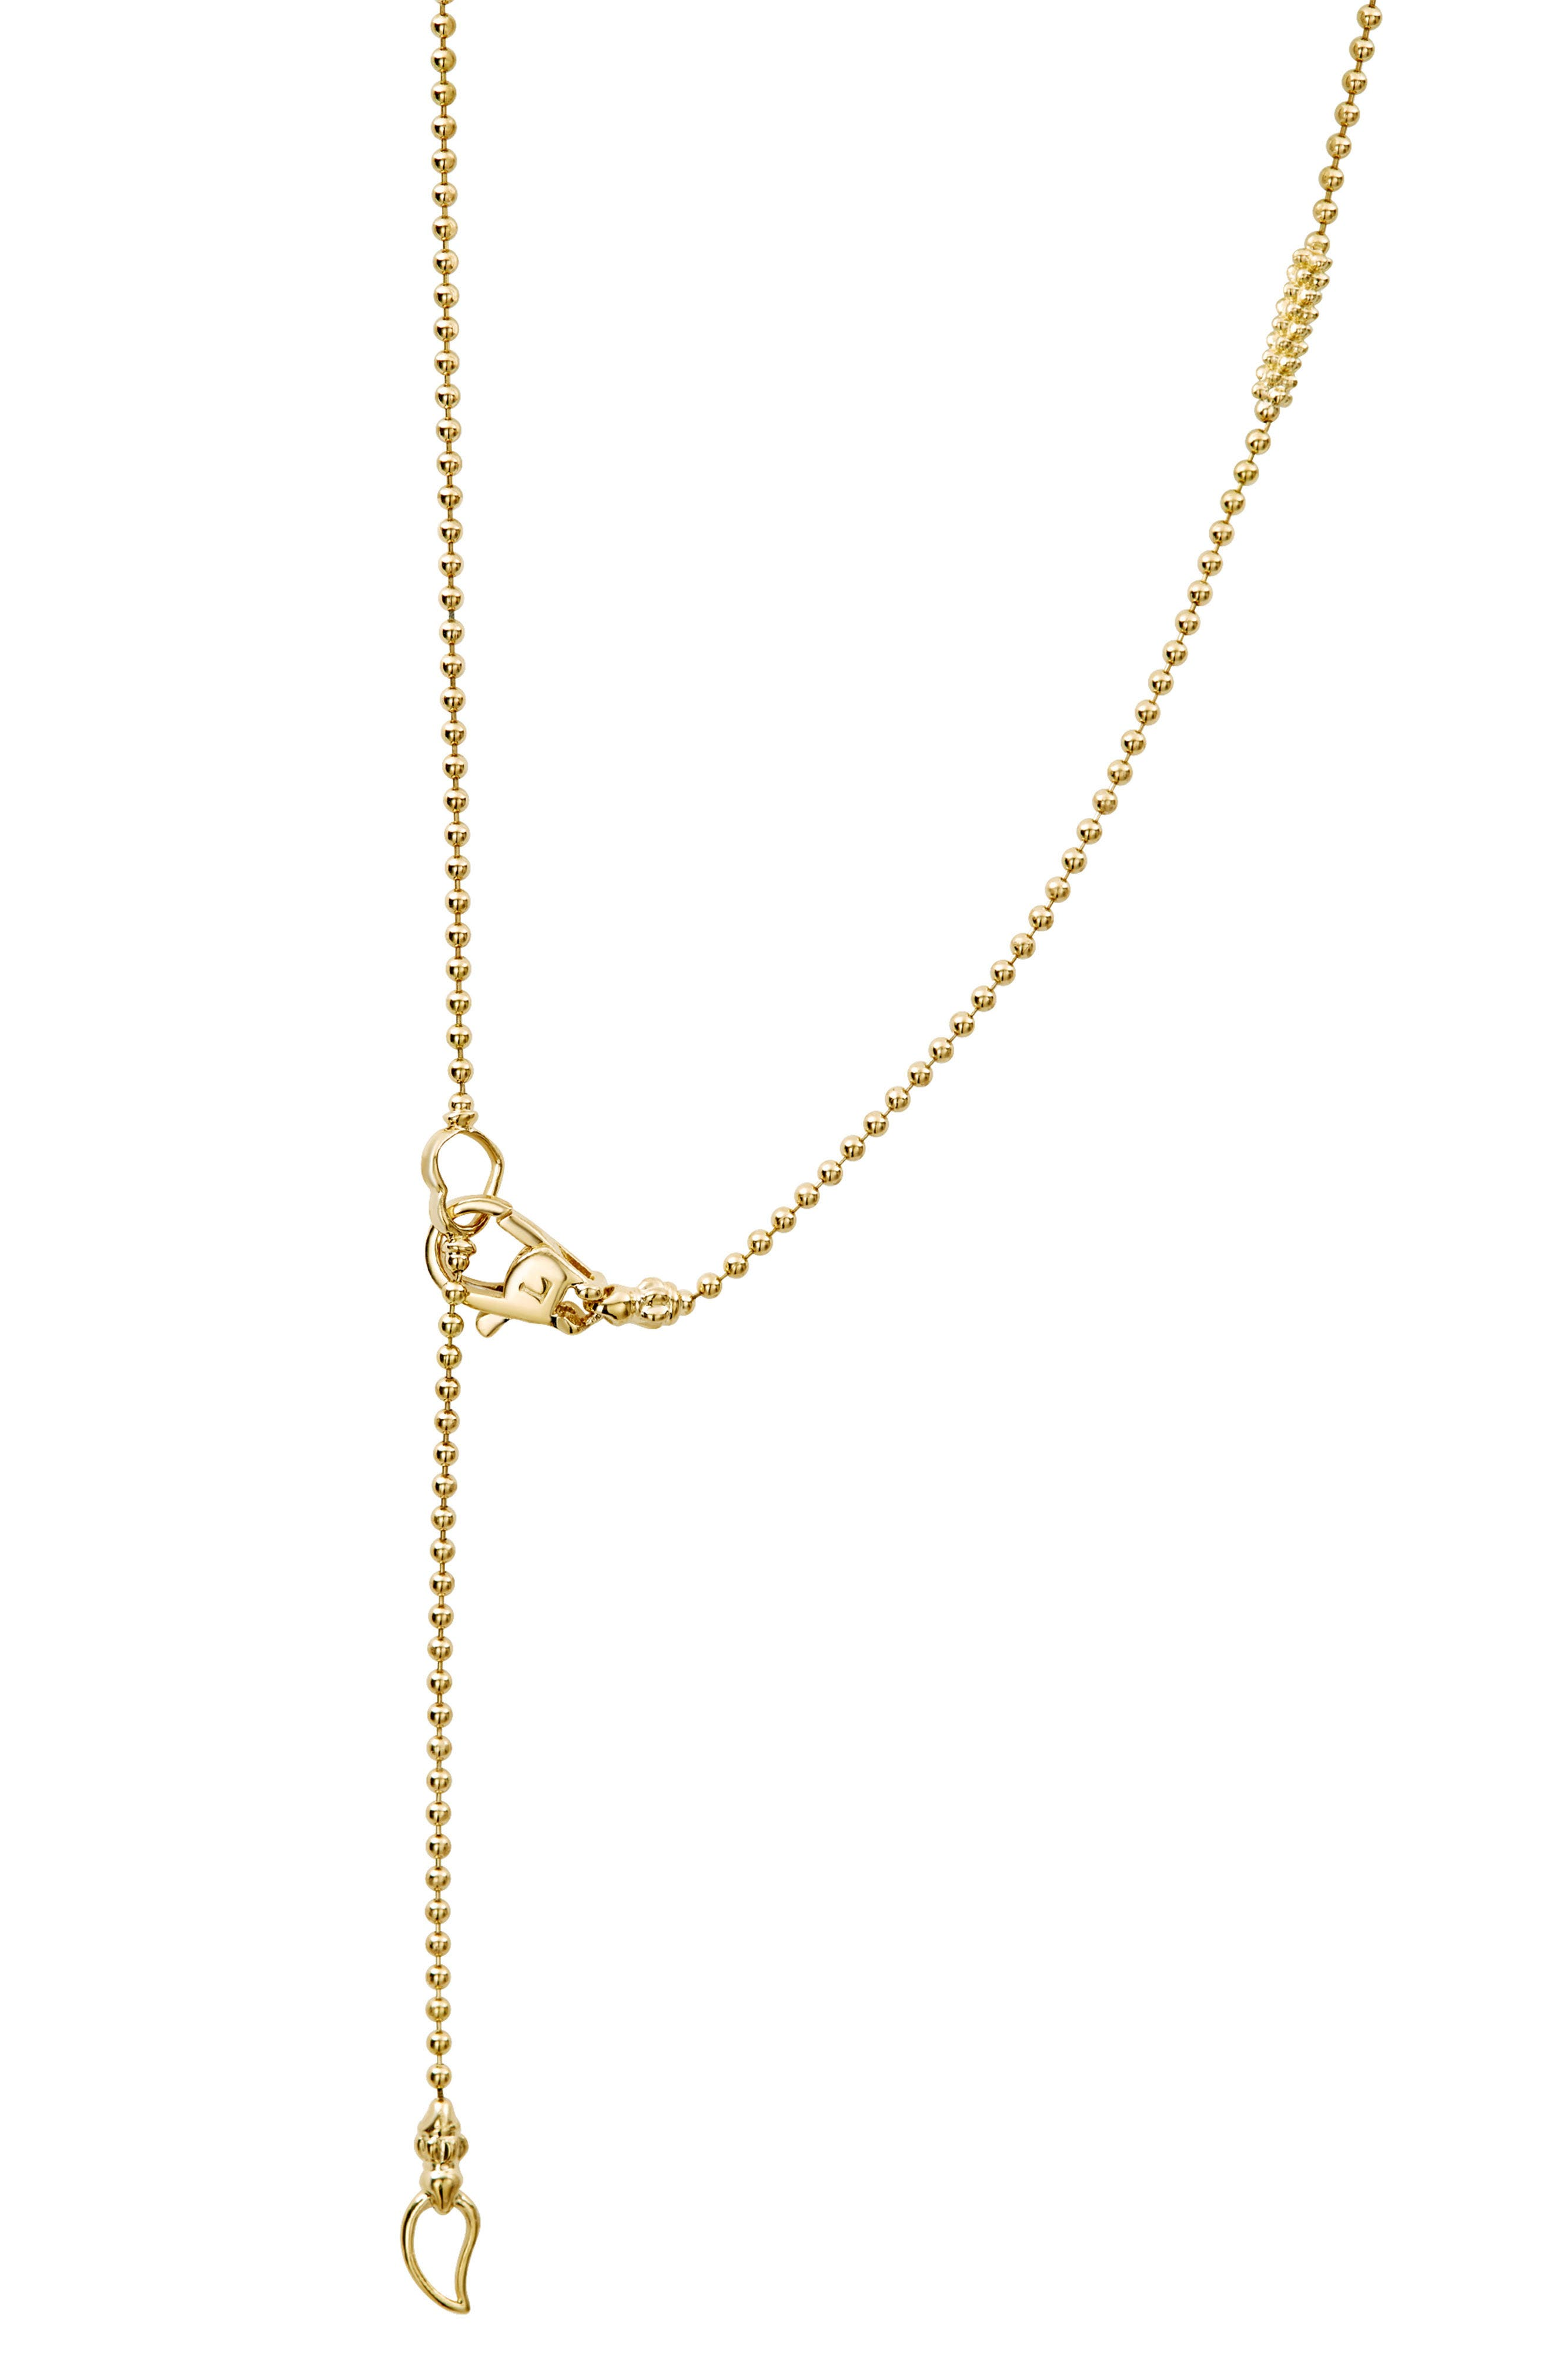 Caviar Bars & Cages Chain Necklace,                             Alternate thumbnail 4, color,                             GOLD